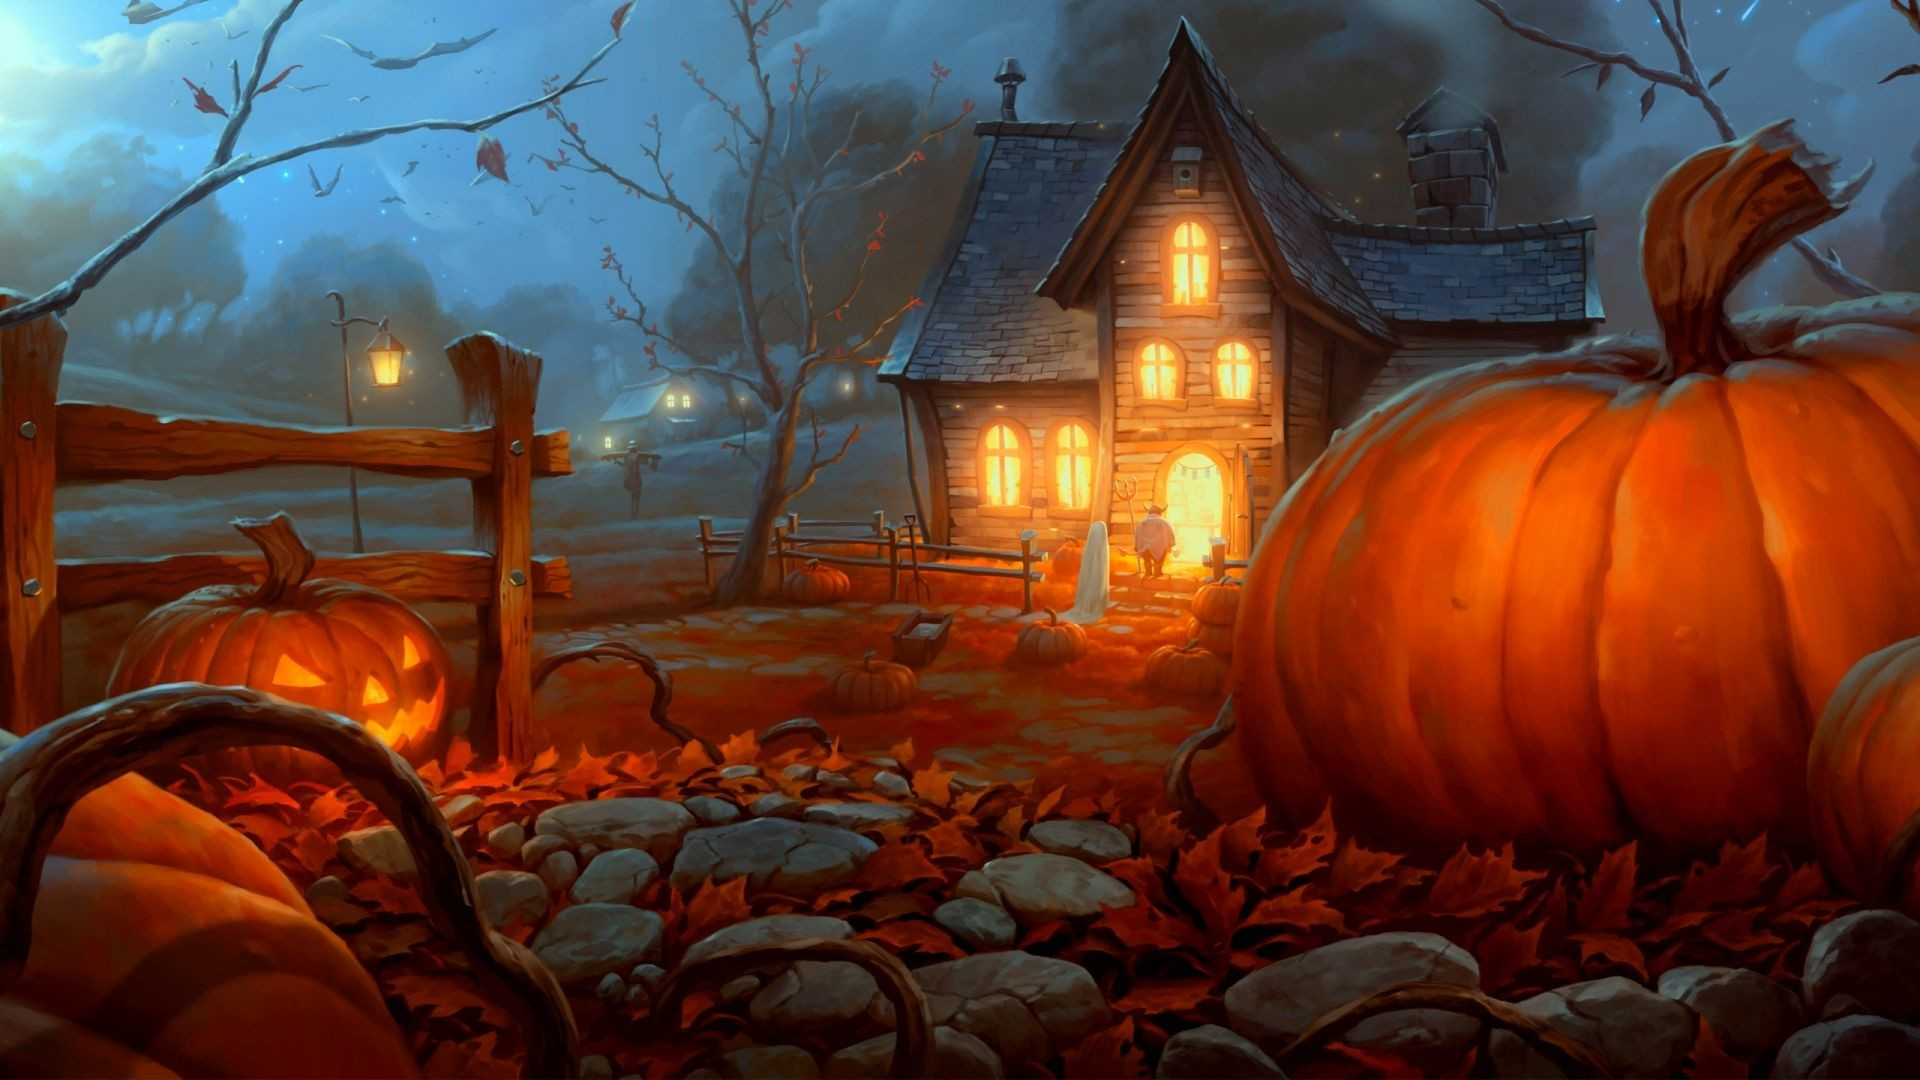 1920x1080 Halloween Backgrounds Free Download | PixelsTalk.Net. Halloween Backgrounds  Free Download PixelsTalk Net